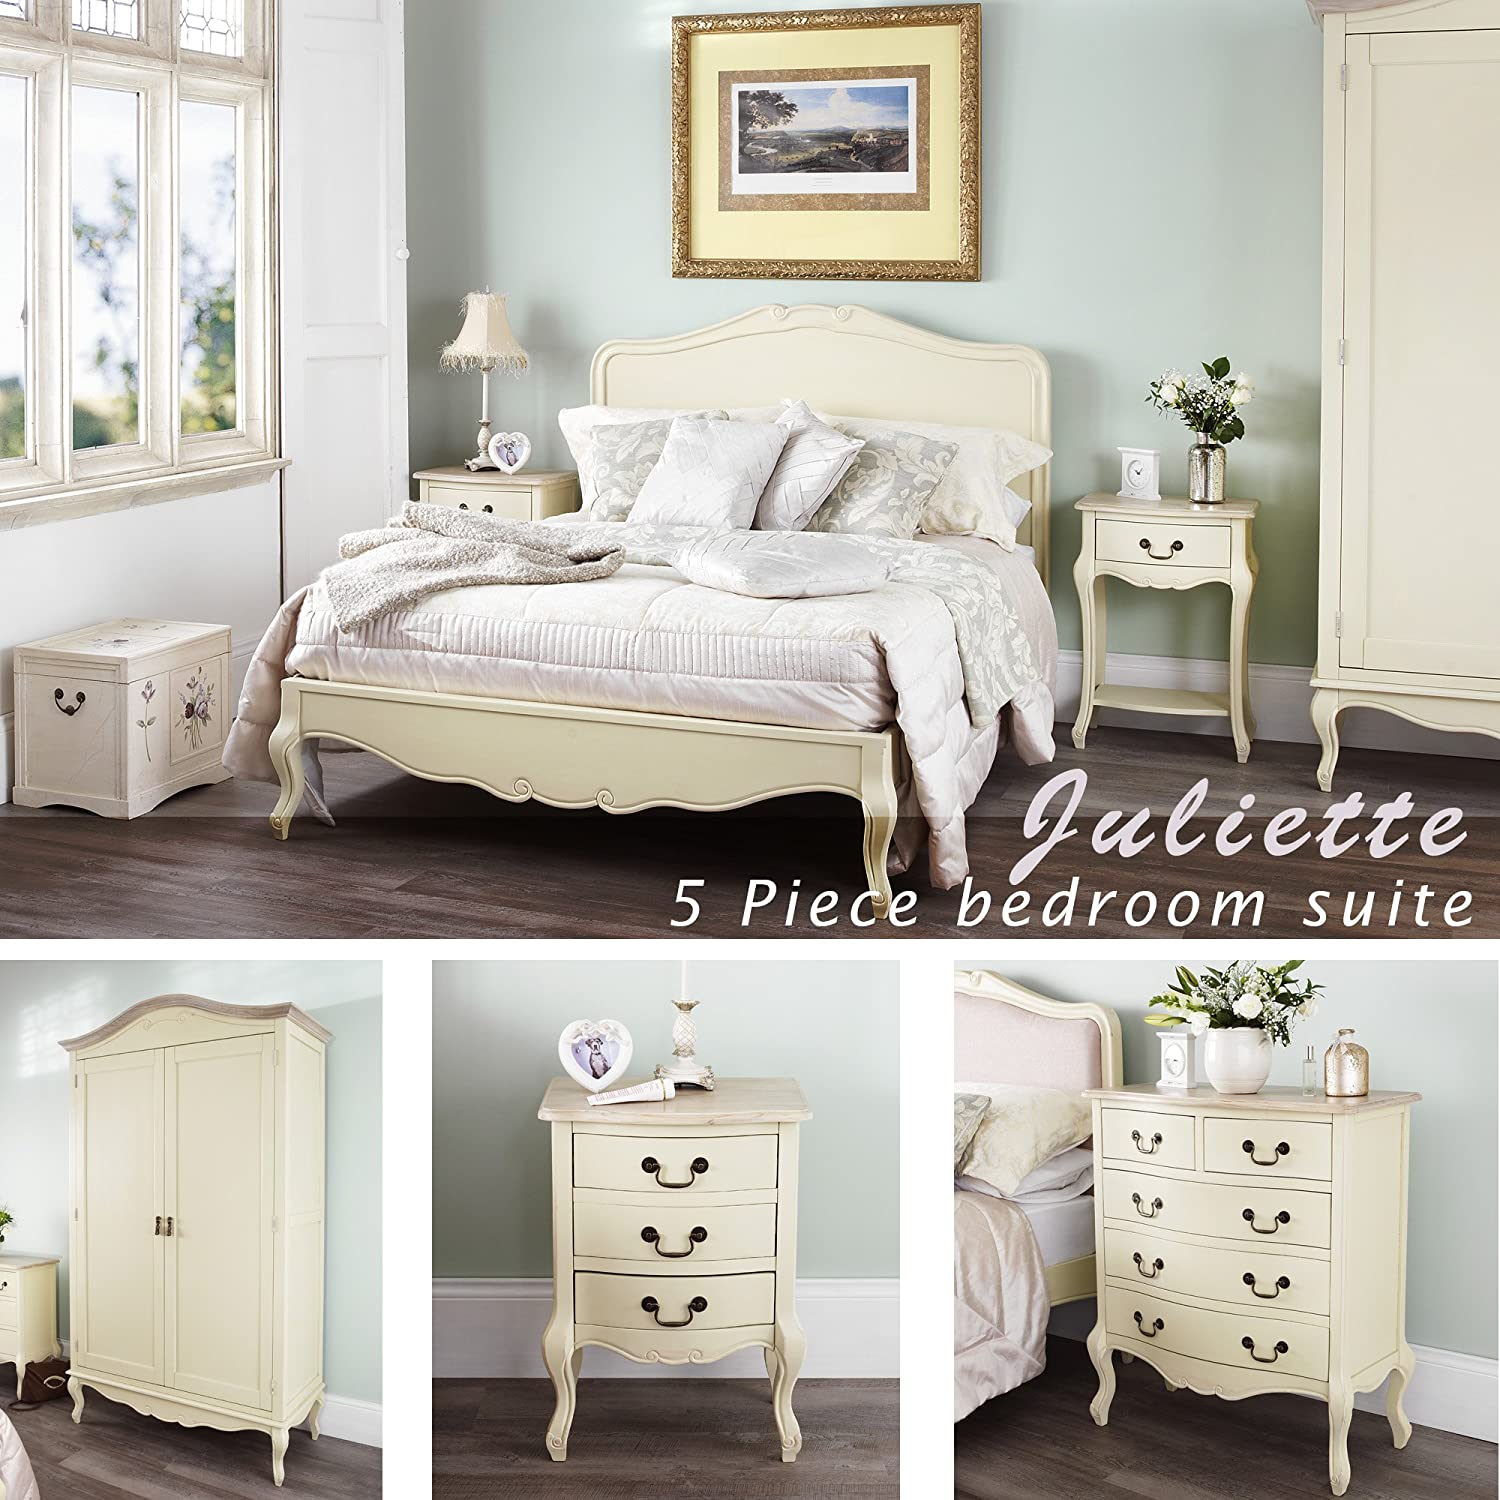 vintage chic bedroom furniture. Juliette Shabby Chic Champagne Double Bed 5pc Bedroom Furniture Set, FULLY ASSEMBLED: Amazon.co.uk: Kitchen \u0026 Home Vintage Amazon UK